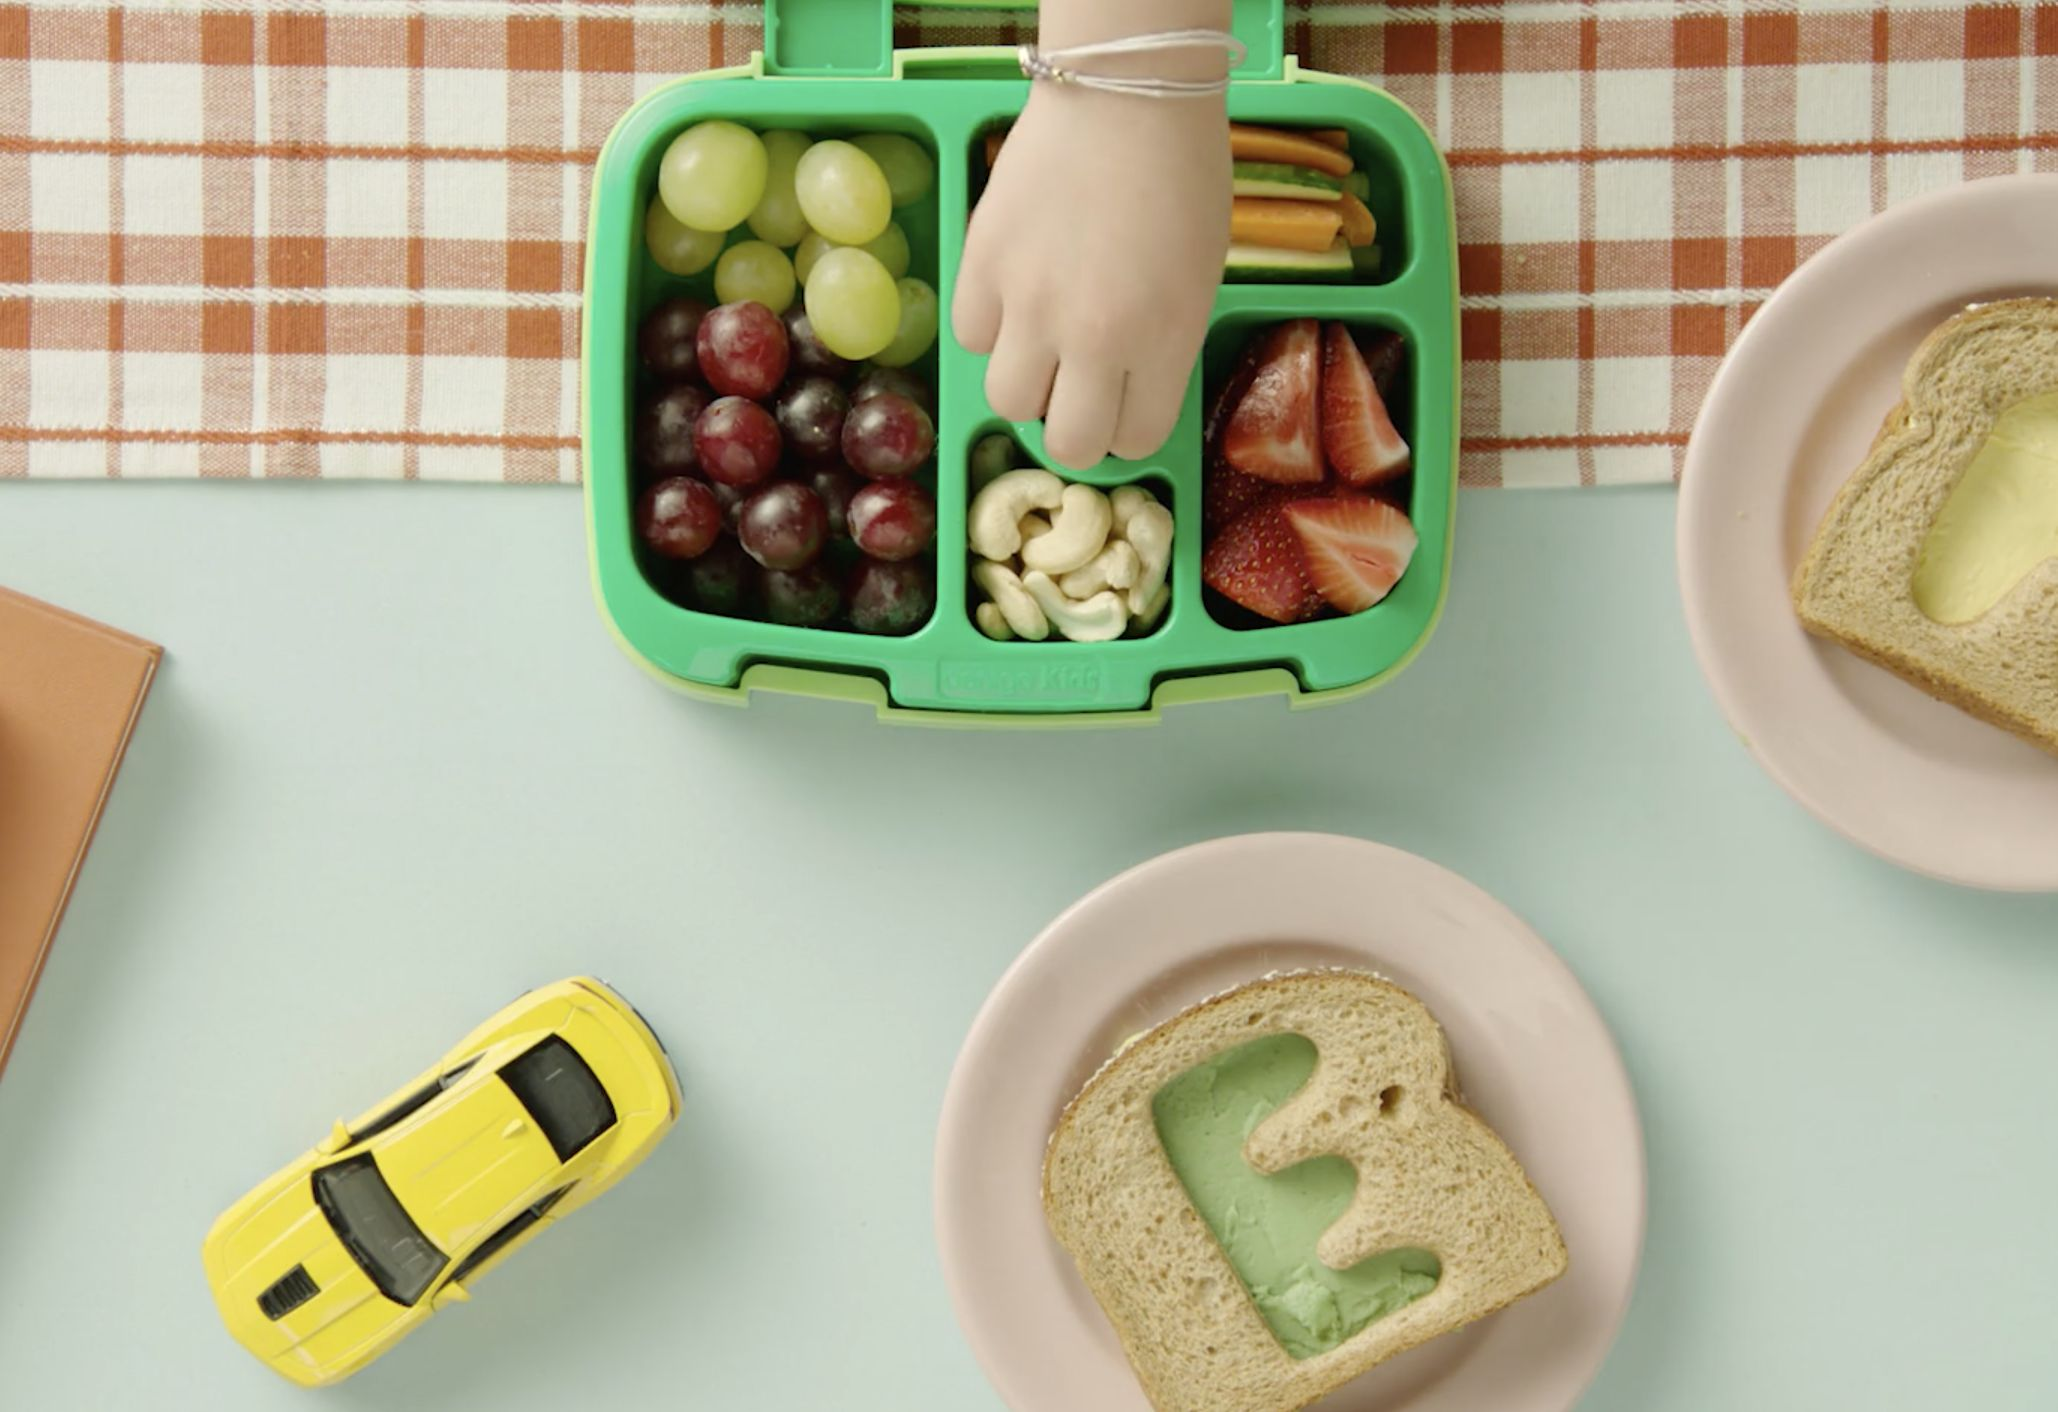 Make these colorful letter sandwiches to spell out personalized messages to your kids